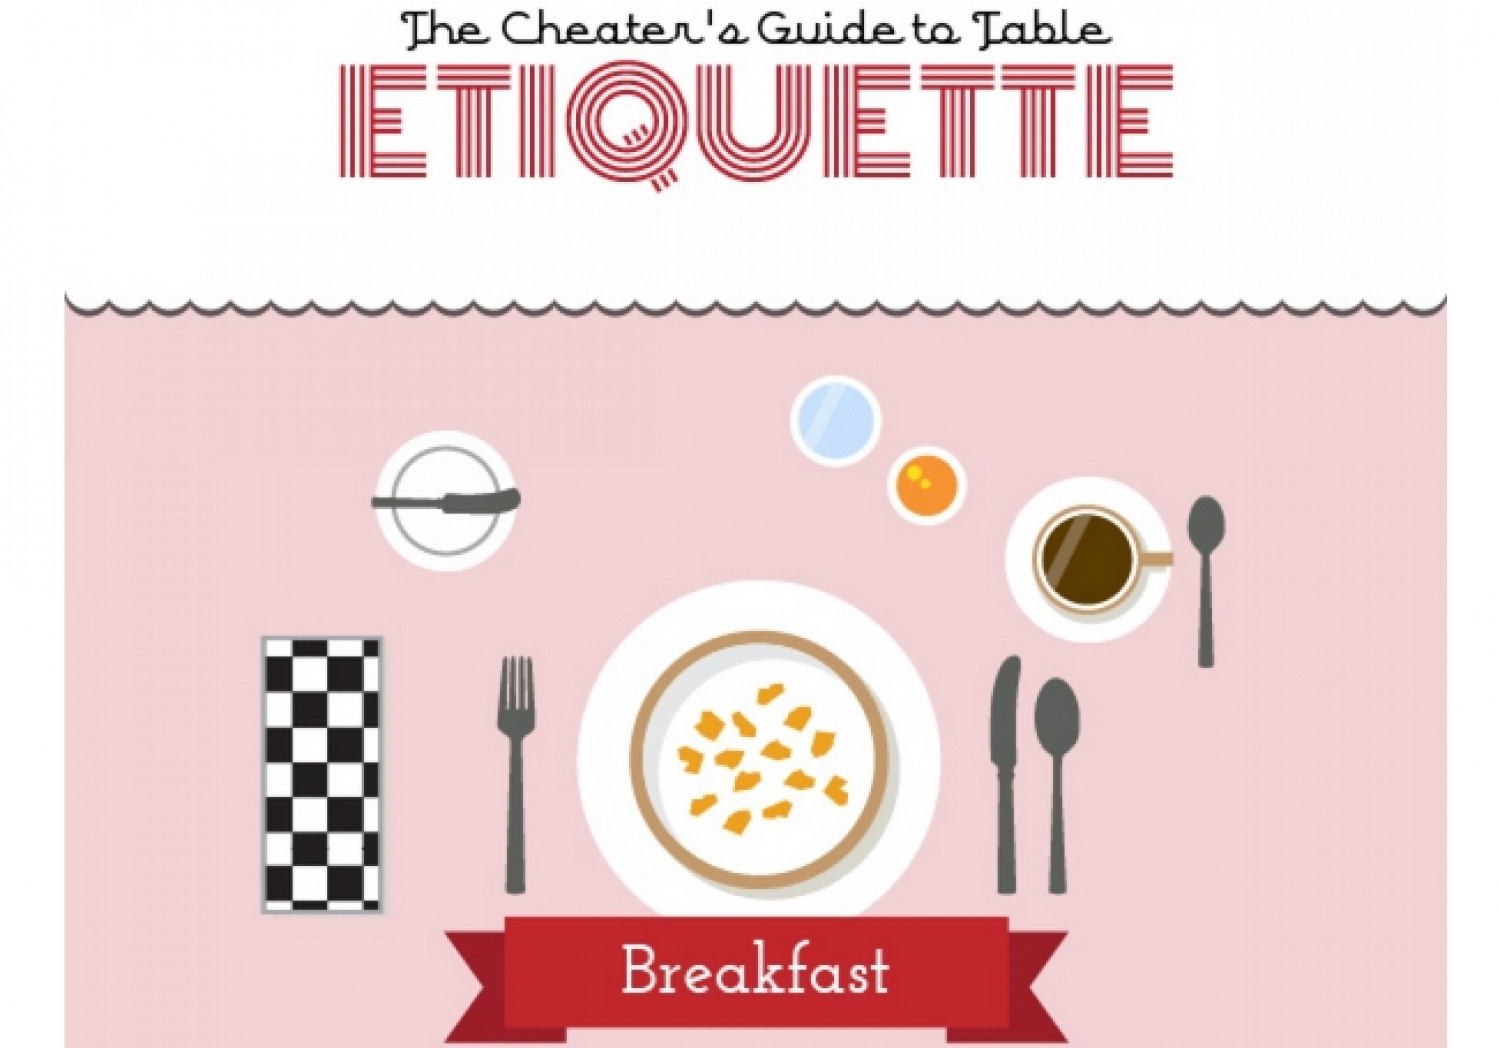 The Cheaters Guide To Table Etiquette Infographic